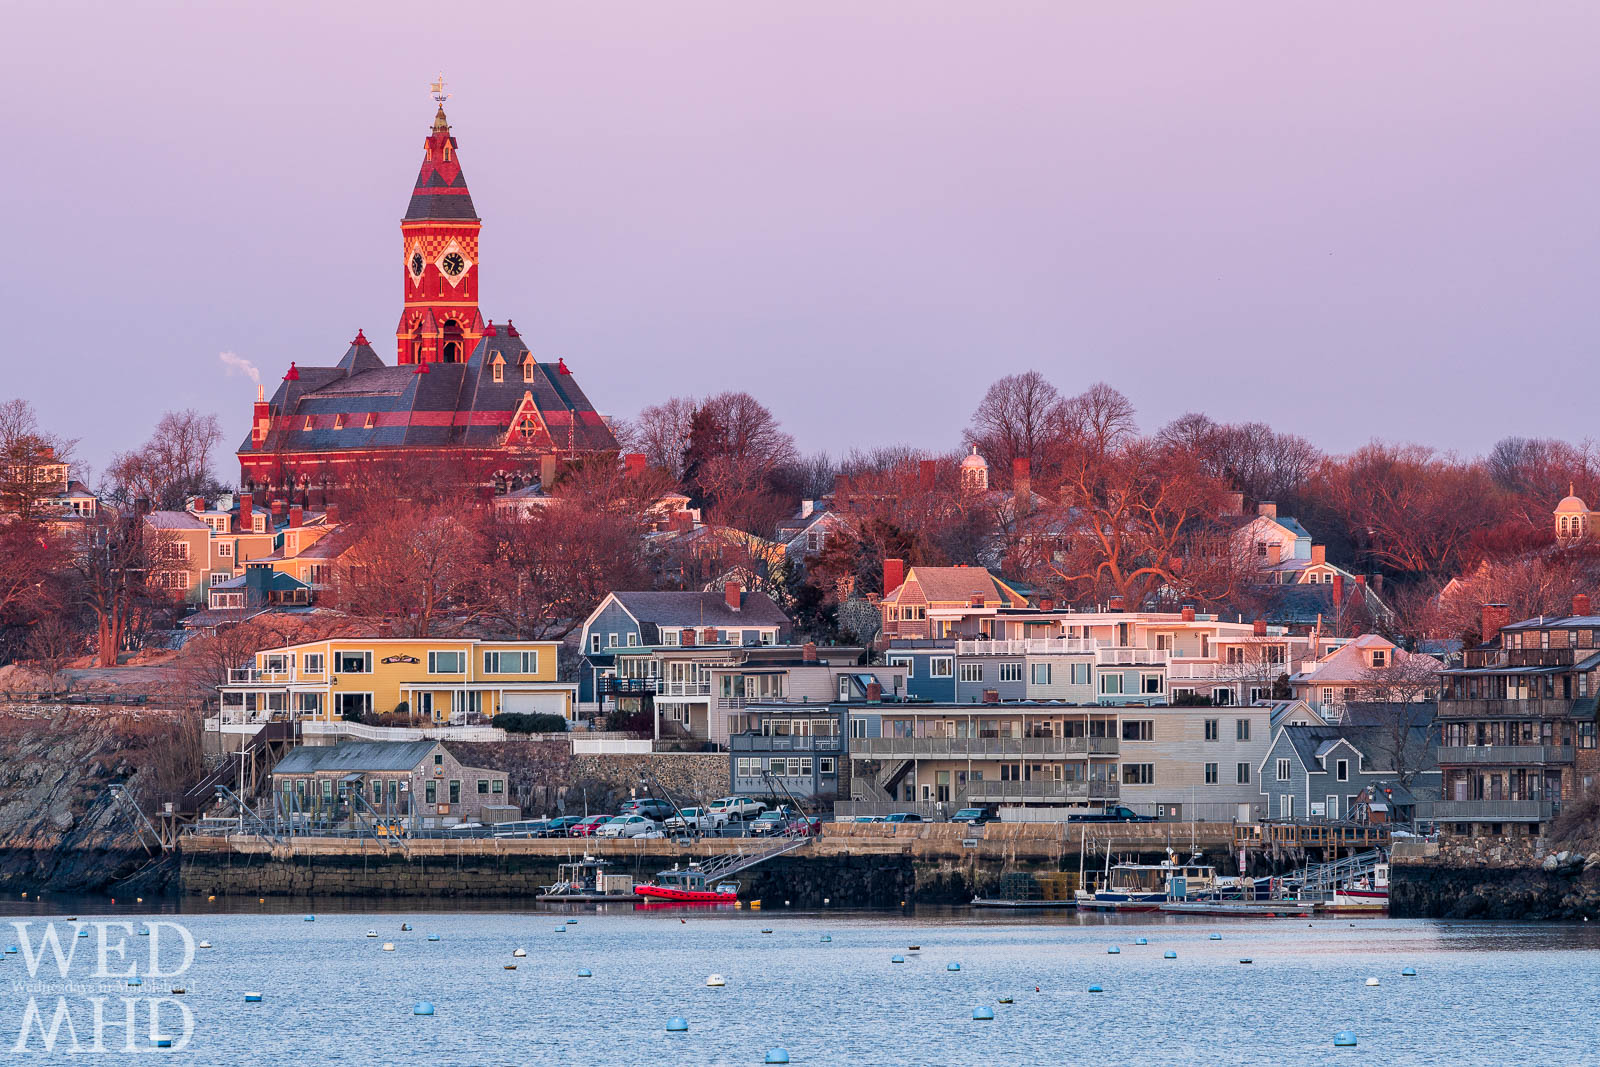 First light of day shines on Abbot Hall on a late March morning in Marblehead